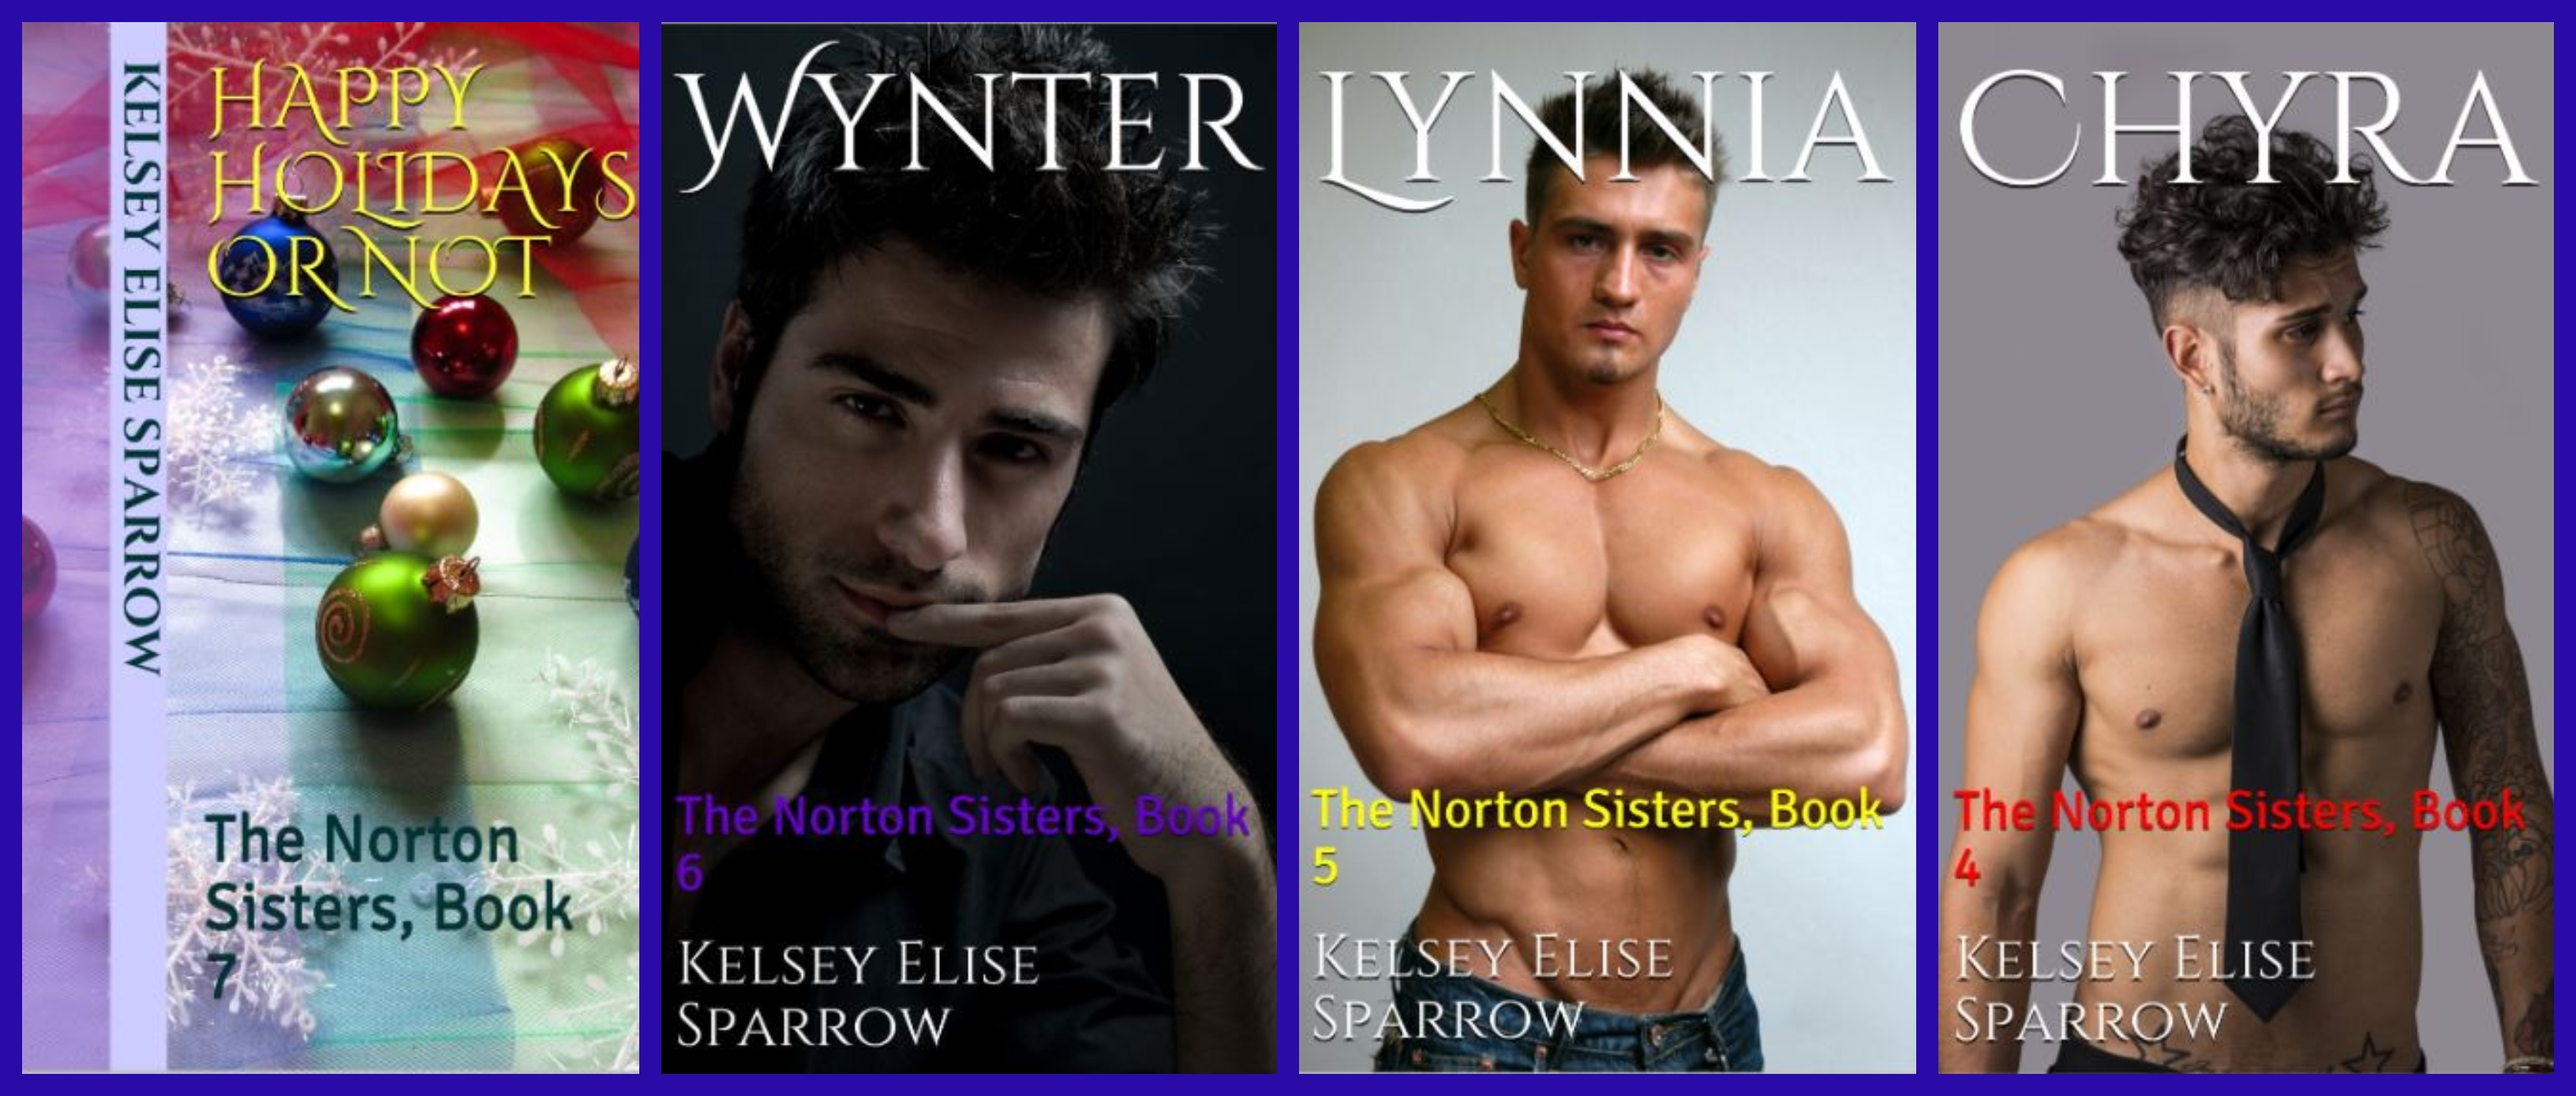 The Norton Sisters - Books 4-7